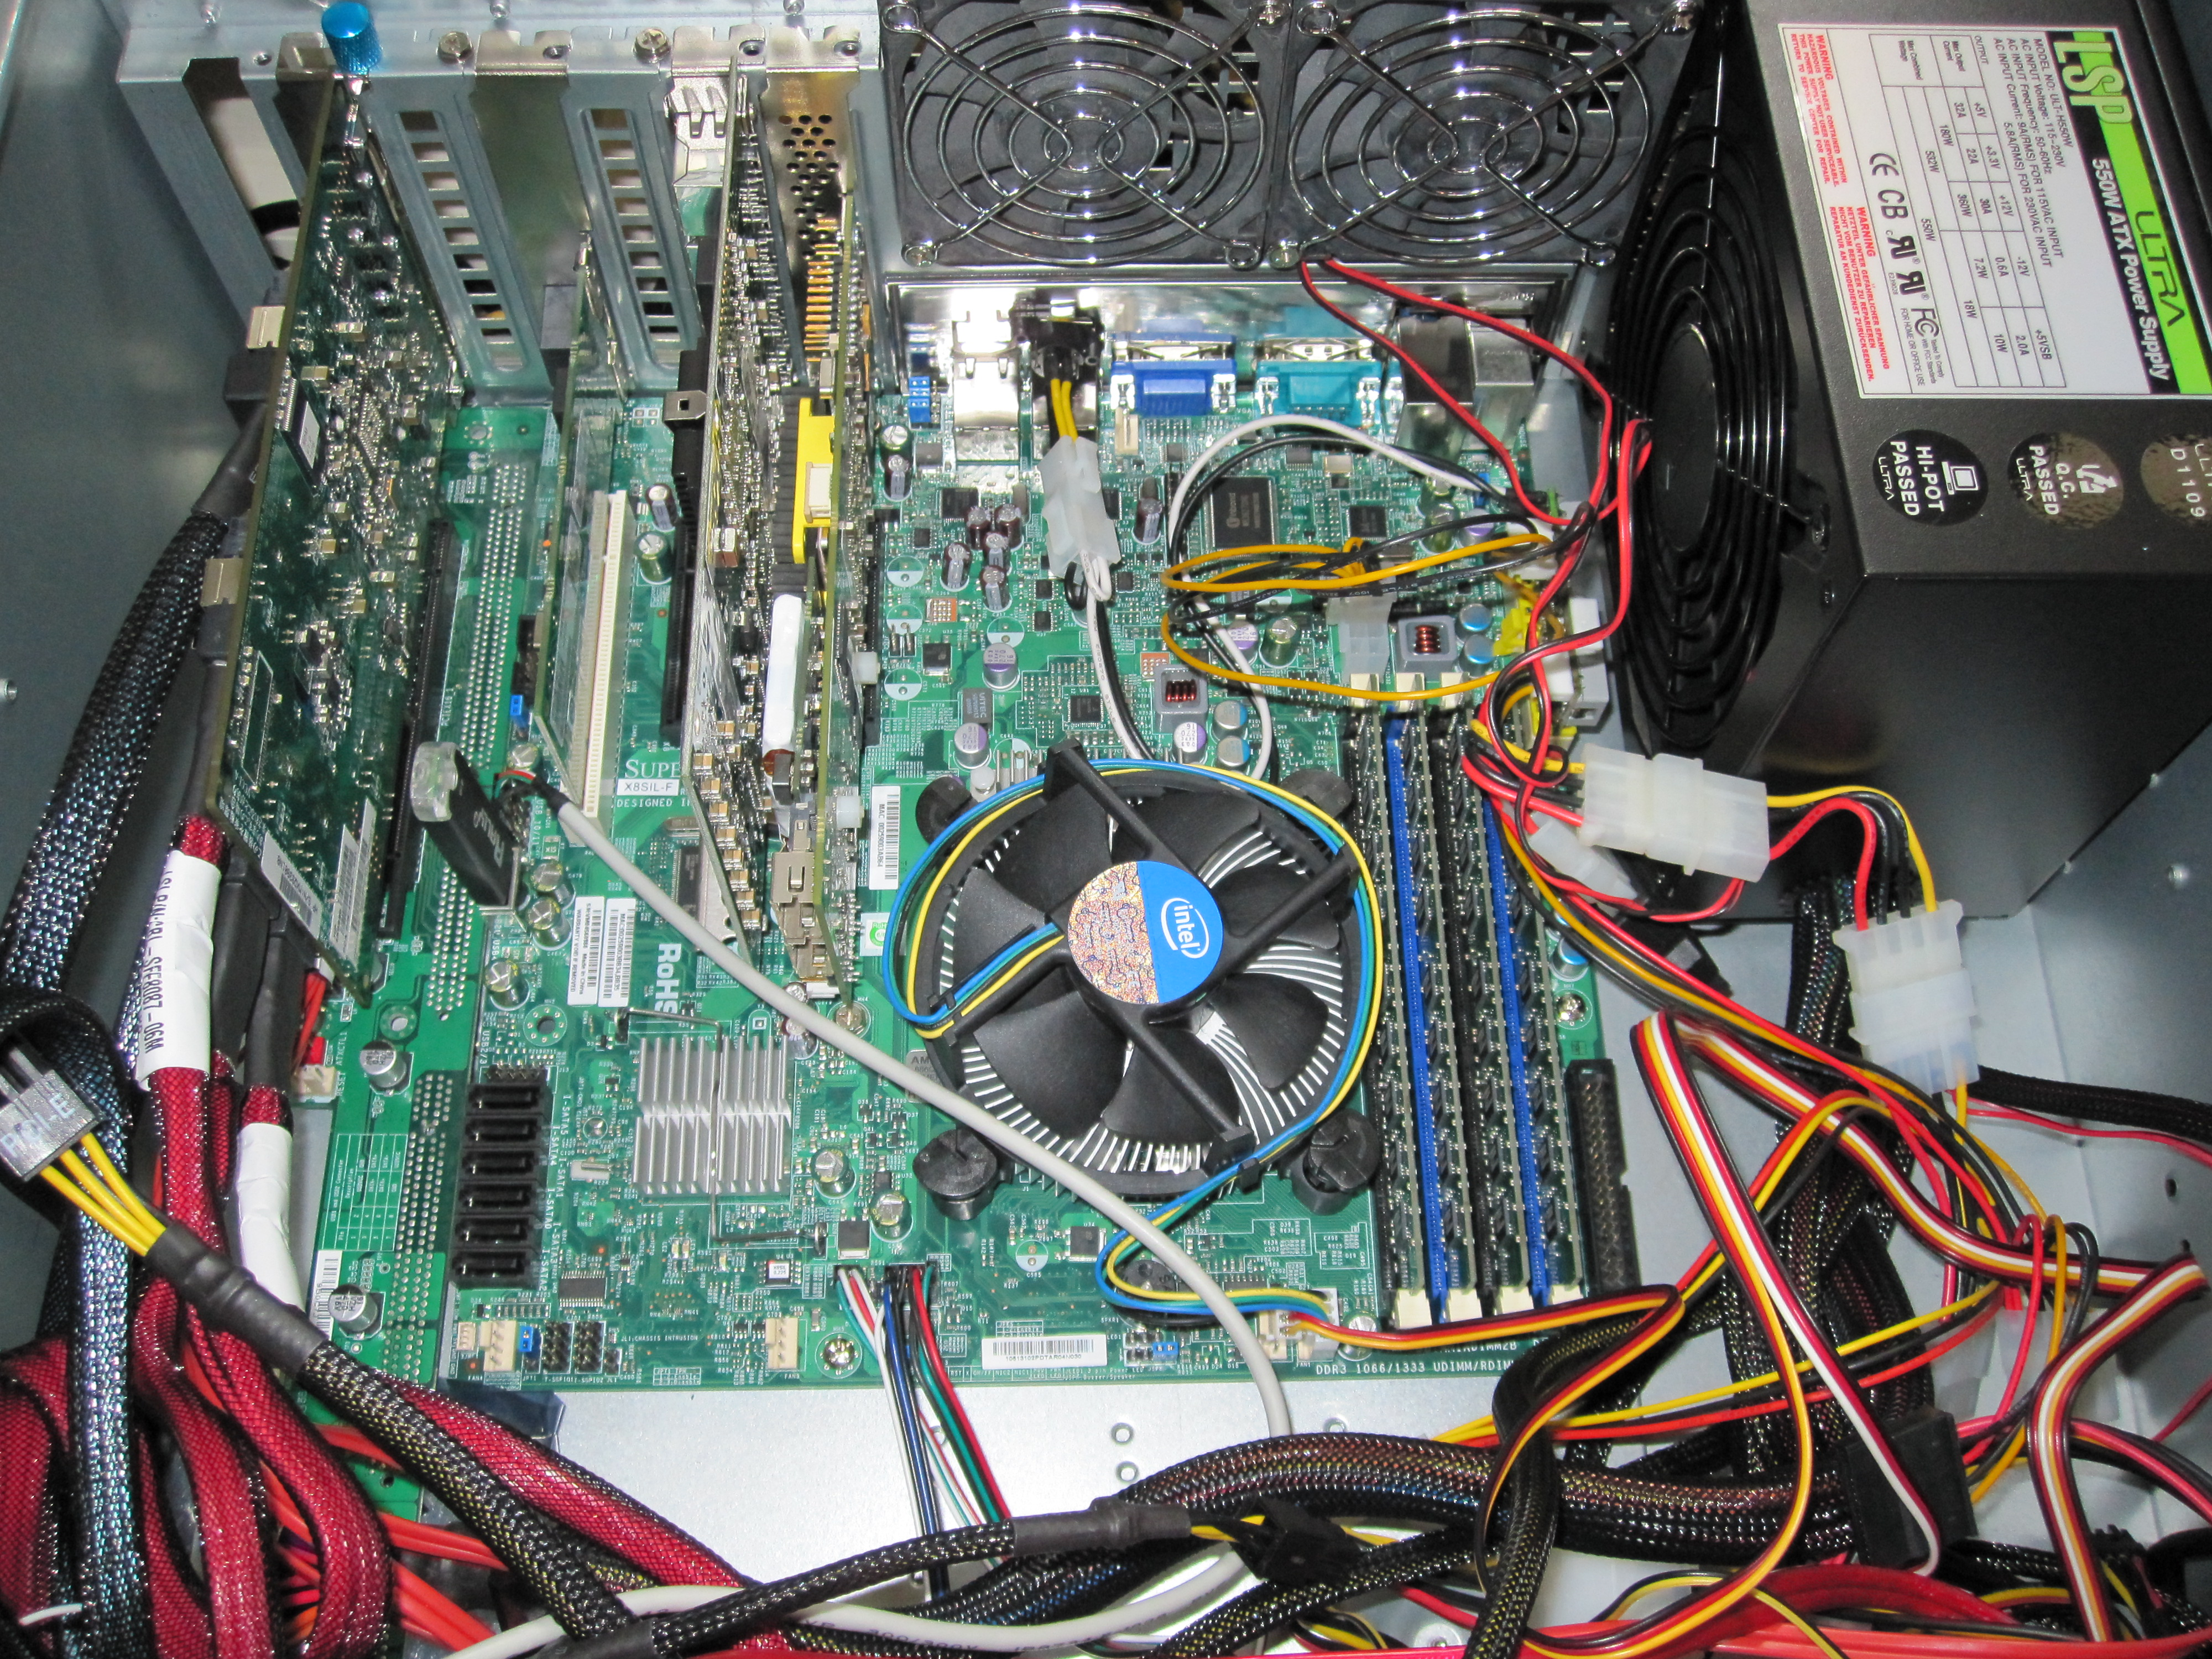 Supermicro X8SIL-F next to the HP-SAS Expander and PCMIG setup with both power supplies